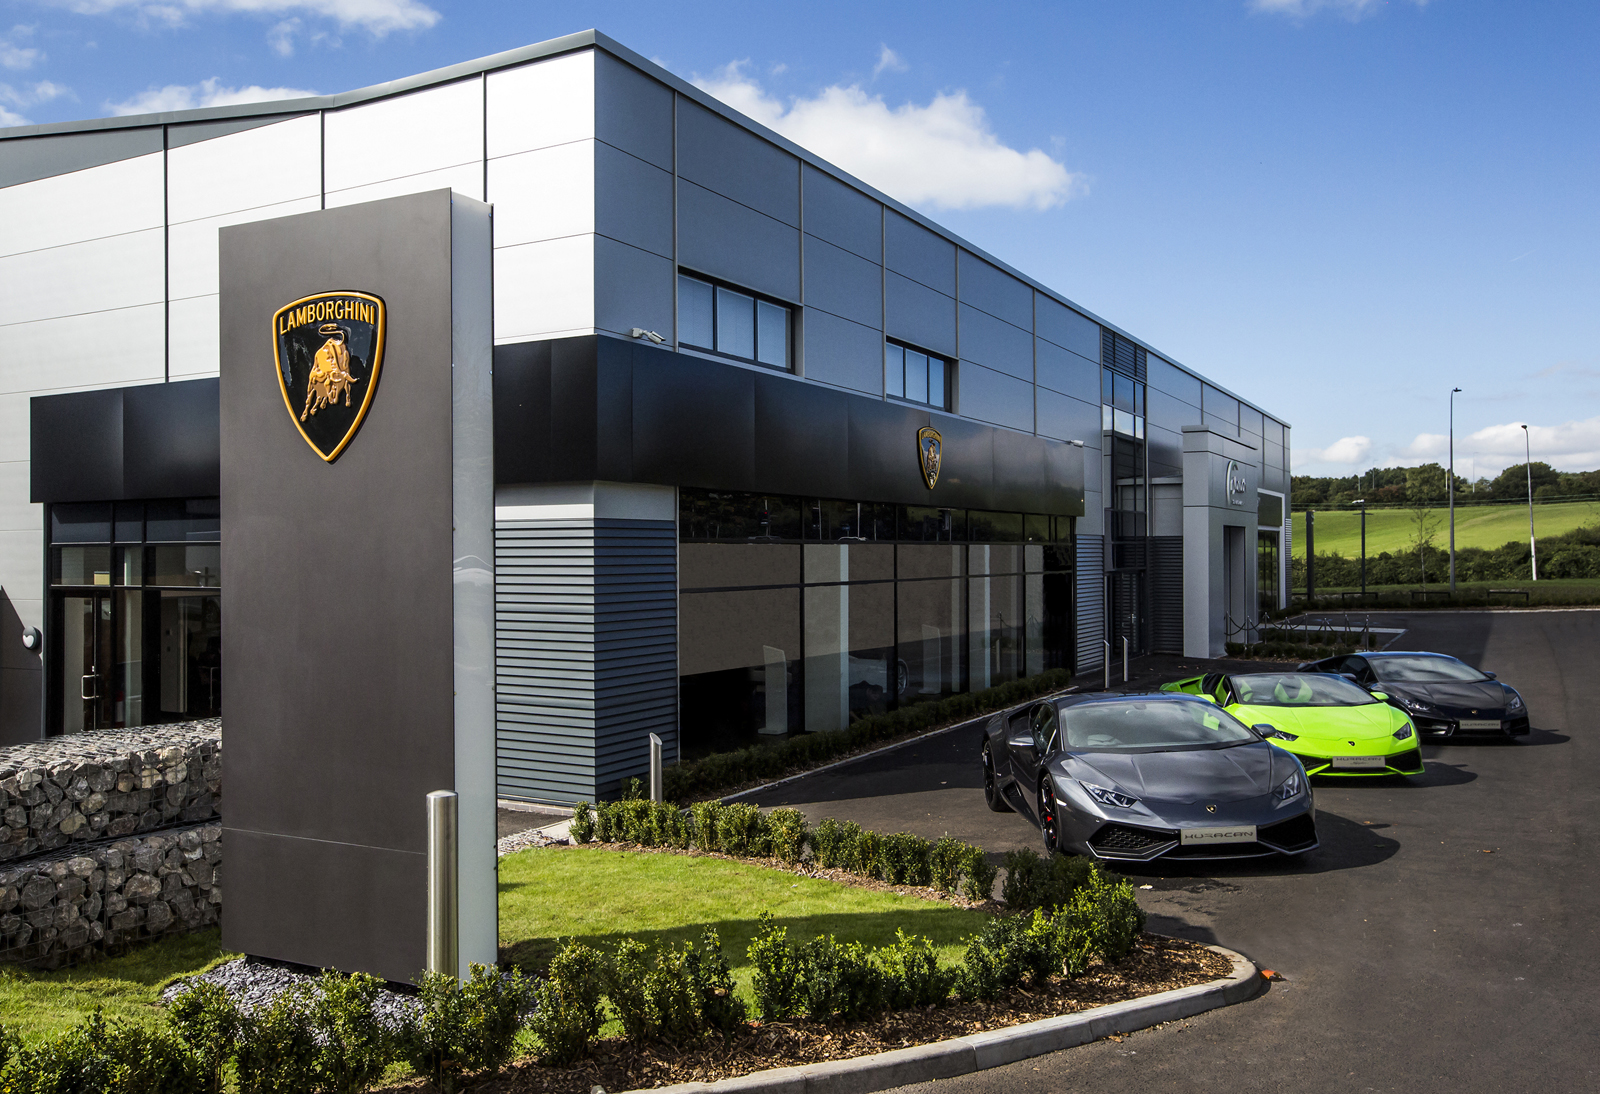 Lamborghini 39 s fresh showroom design ready for urus launch for Car showroom exterior design